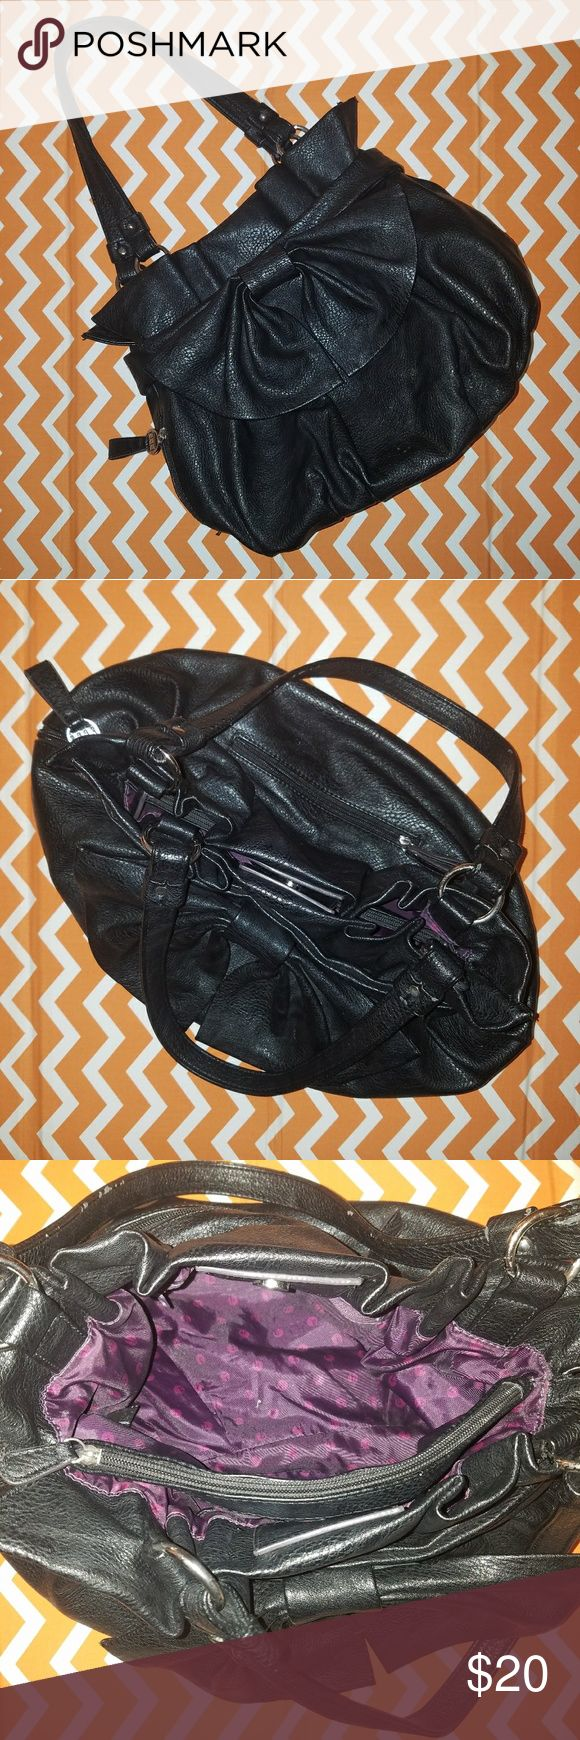 Black Bow Slouchy Hobo Purse by Elle Cute black bucket bag with big bow on front. Has 2 zip pockets on the outside - 1 on back and 1 on side. Inside is lined with purple polka dot fabric and has 2 main pockets with 1 big zip pocket in the middle, 1 small zip pocket on one side, and 2 open pockets on the other. Gently used, good condition!  Please feel free to make me an offer on one or more items! Bundle discount of 15% will be automatically applied to 2+ items! :) Elle Bags Hobos